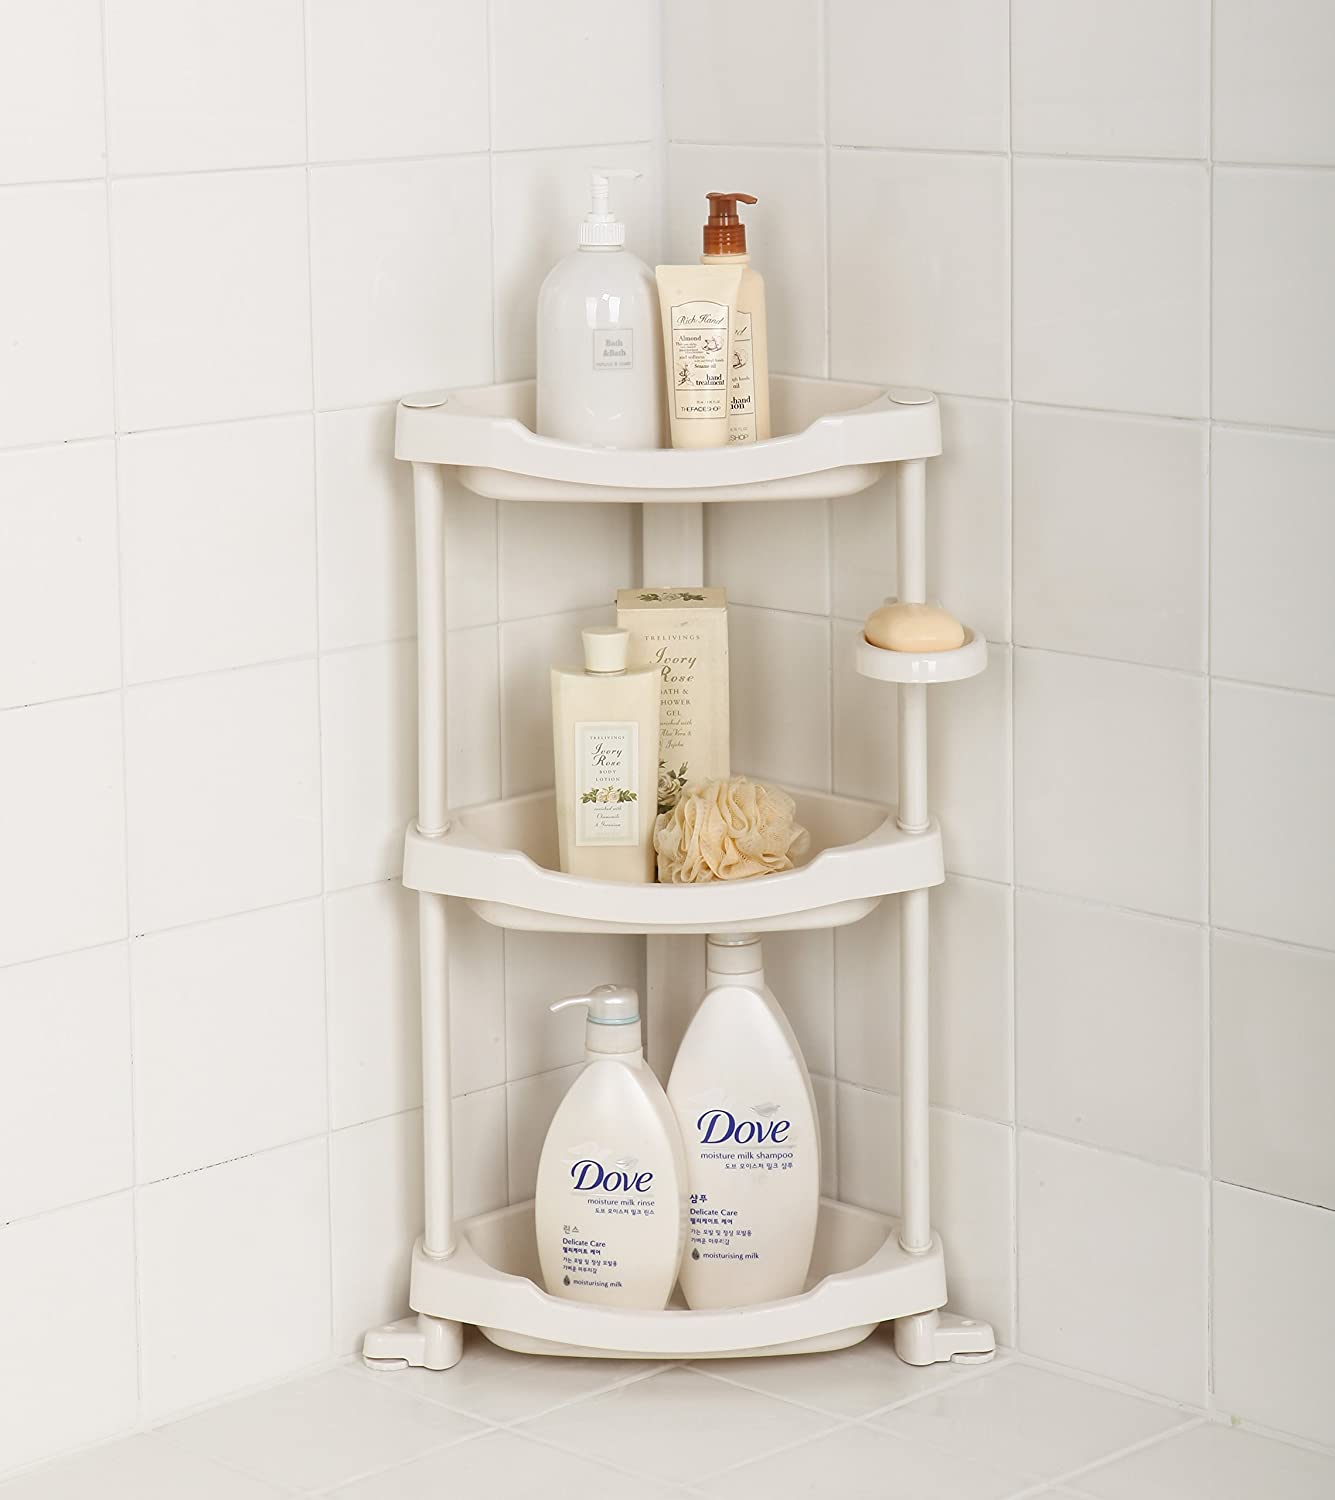 Tenby Living Corner Shower Caddy - 3 Shelf Shower Organizer Caddie with Movable Soap Dish - Heavy-Duty White Plastic Construction - Adjustable Height COMIN18JU000288